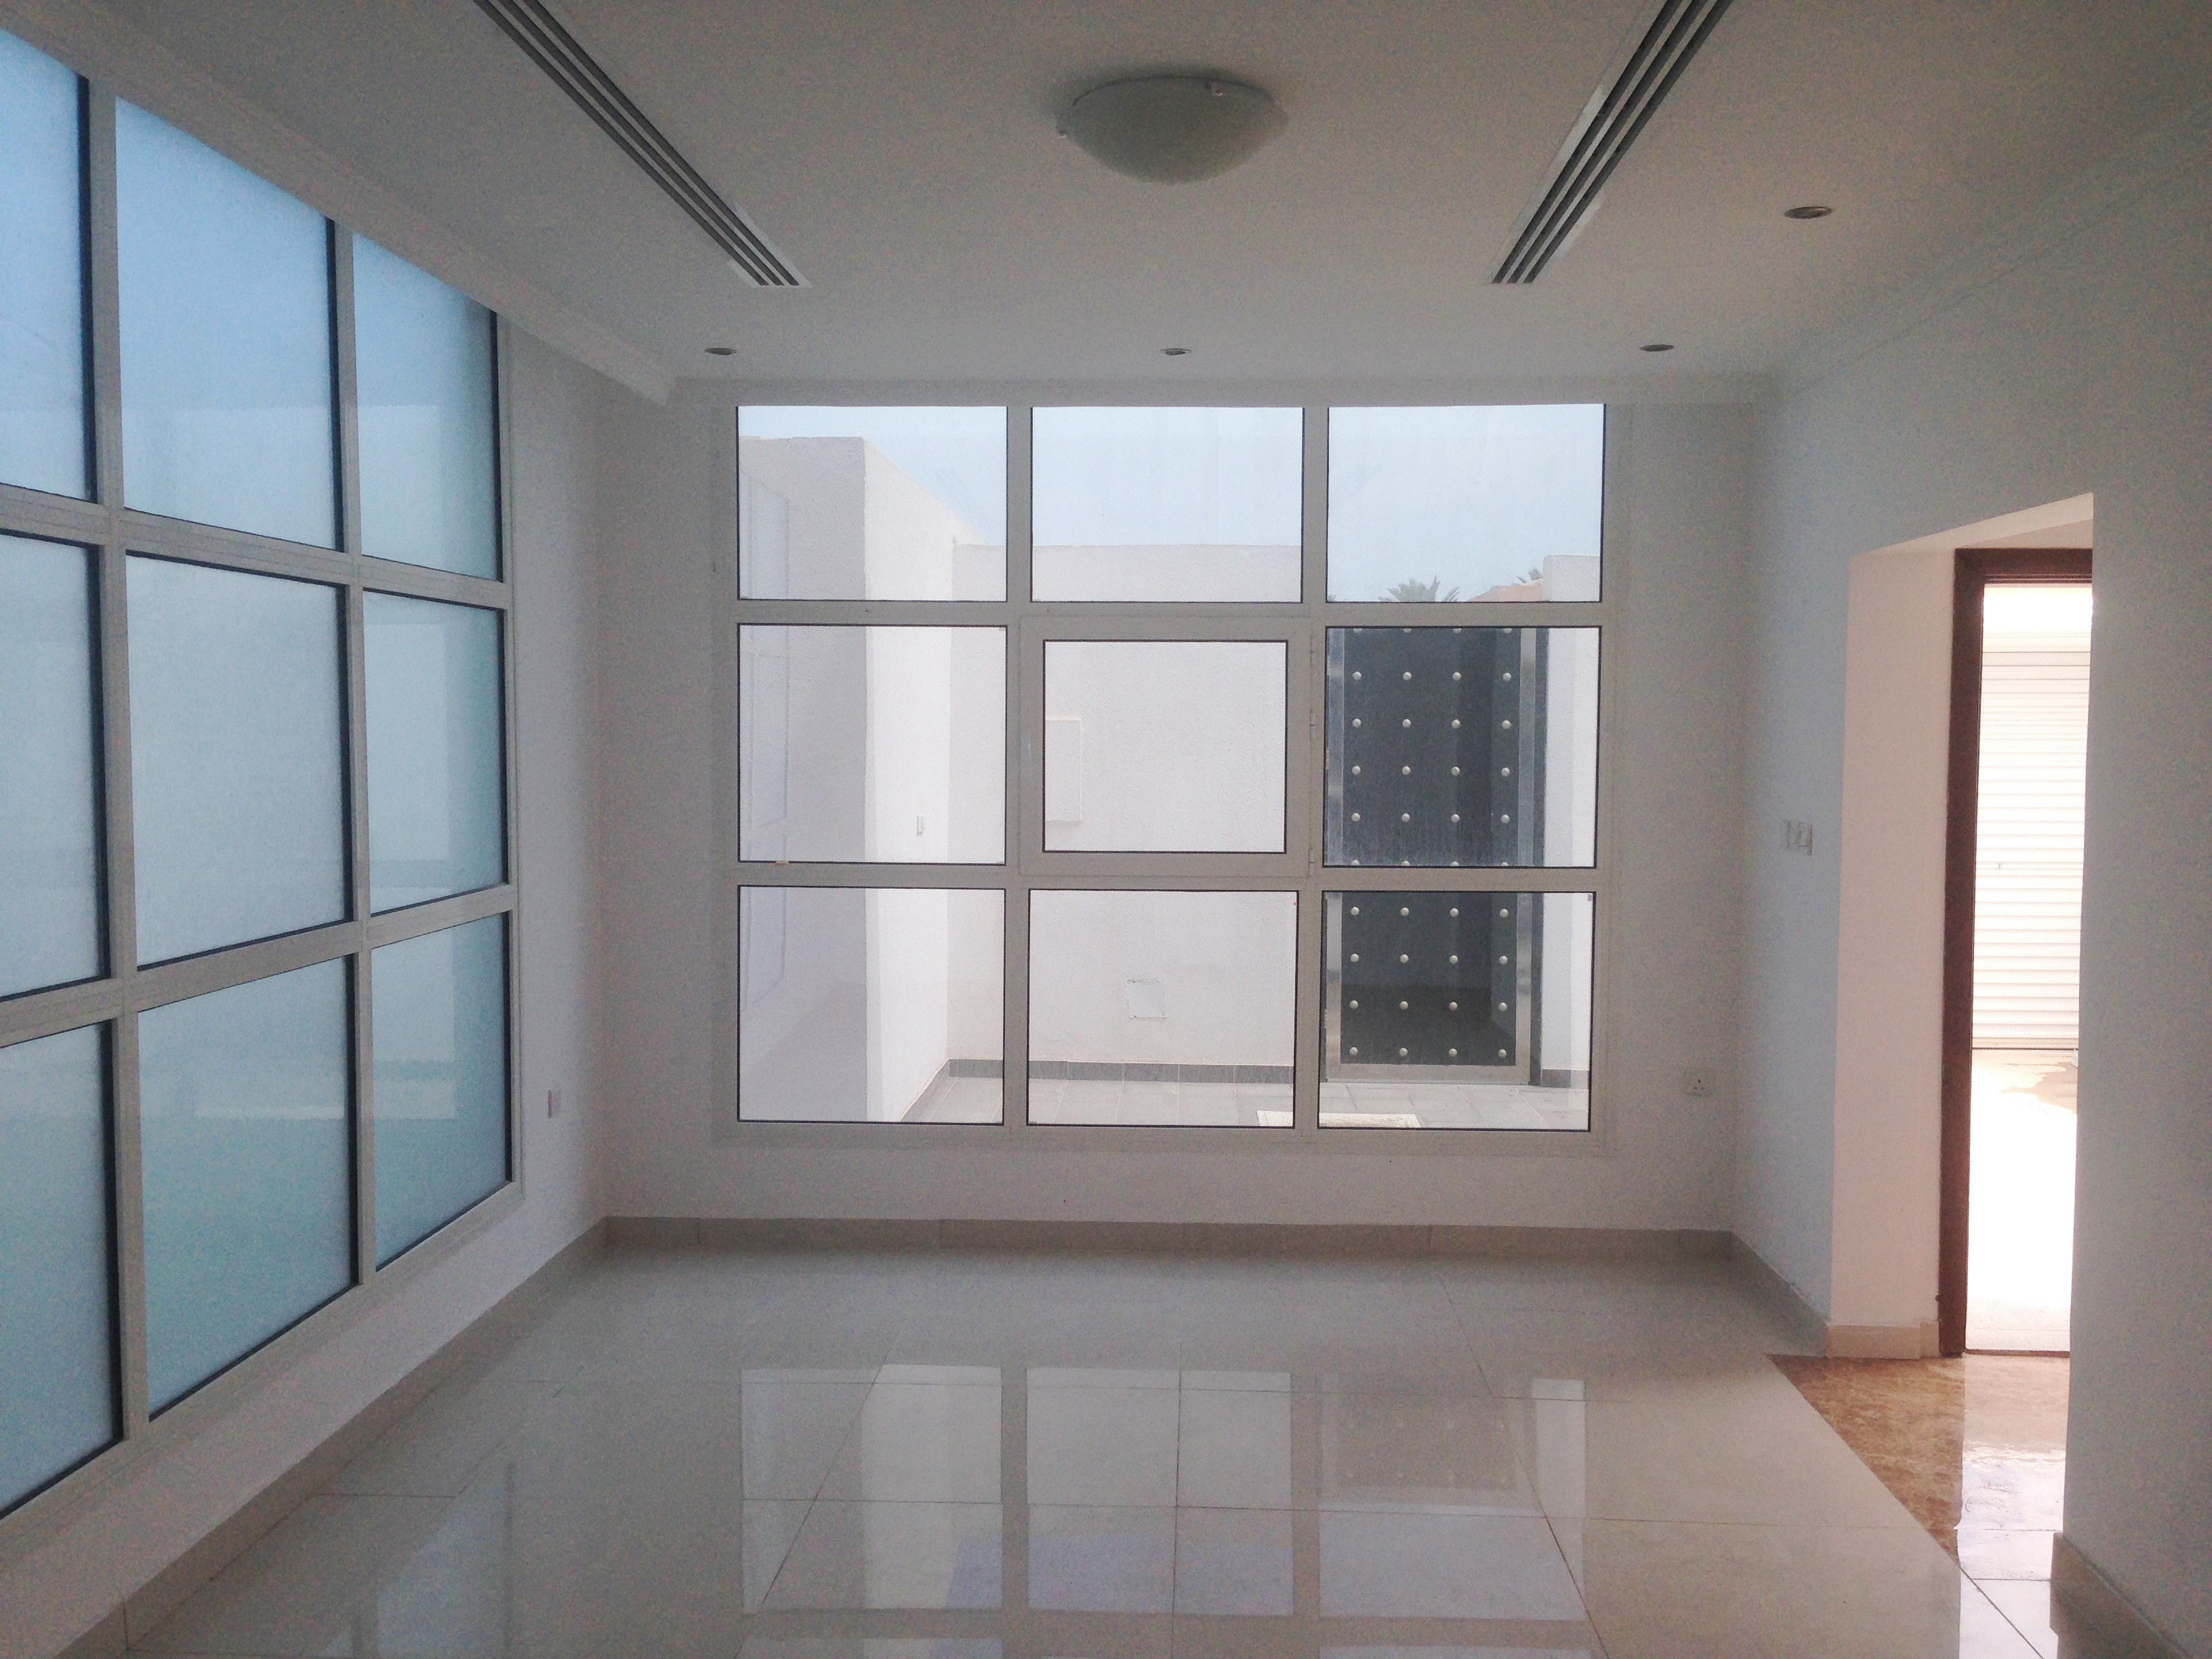 Residential / Featured Properties Arfaj Villa Rakkah - South Al Khobar For Rent